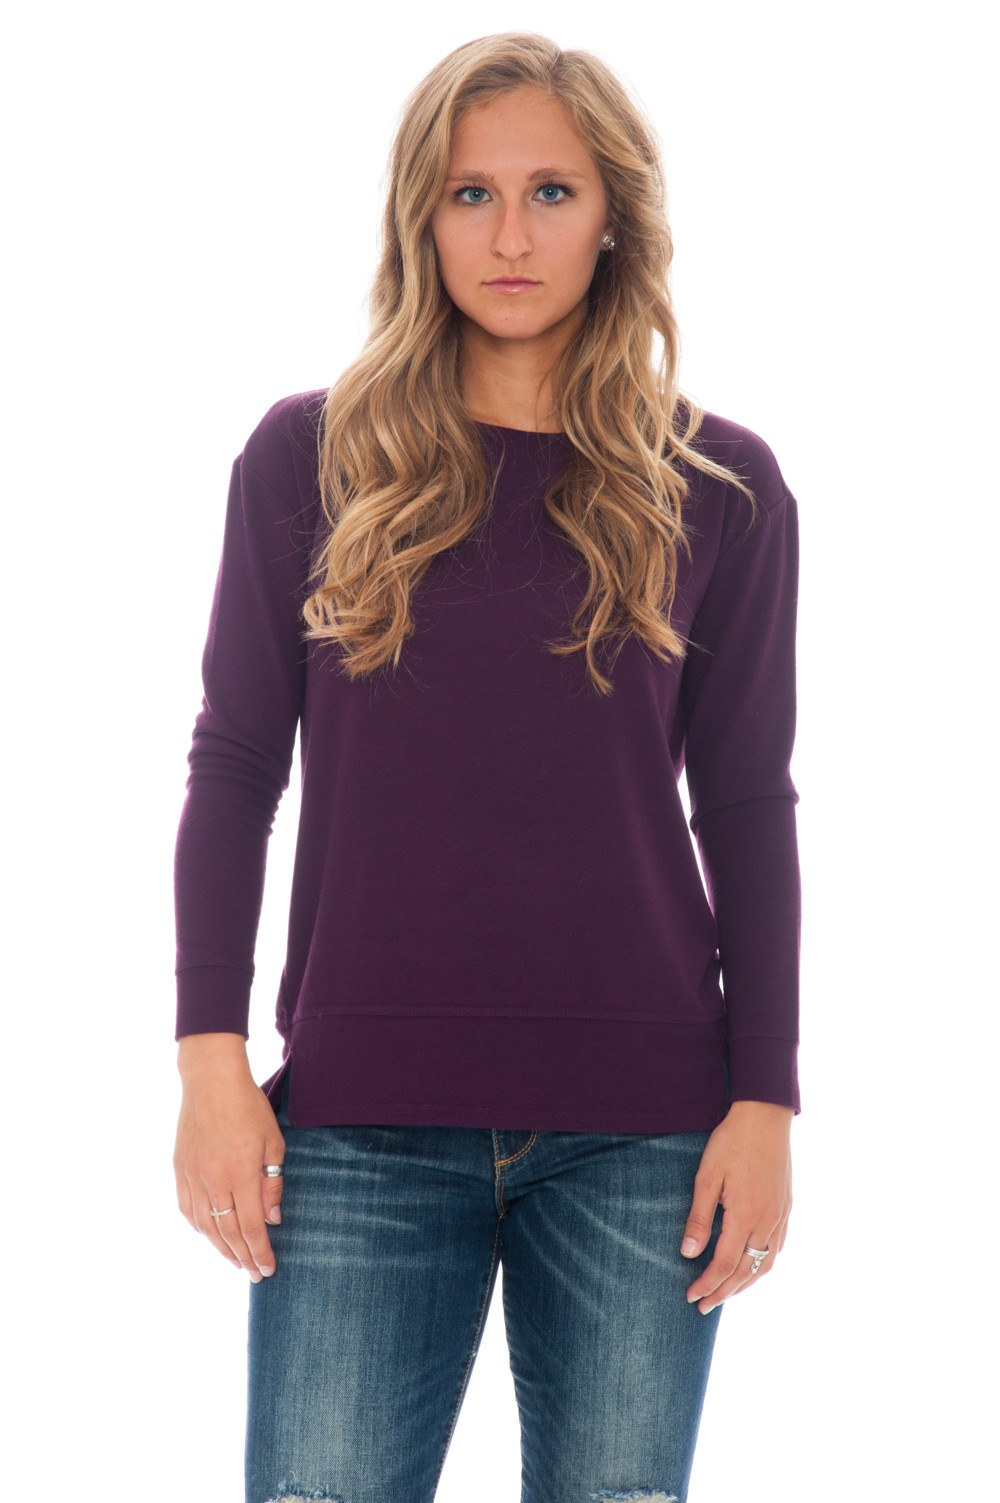 Top - Begley Purple Sleeve by BB Dakota - 1